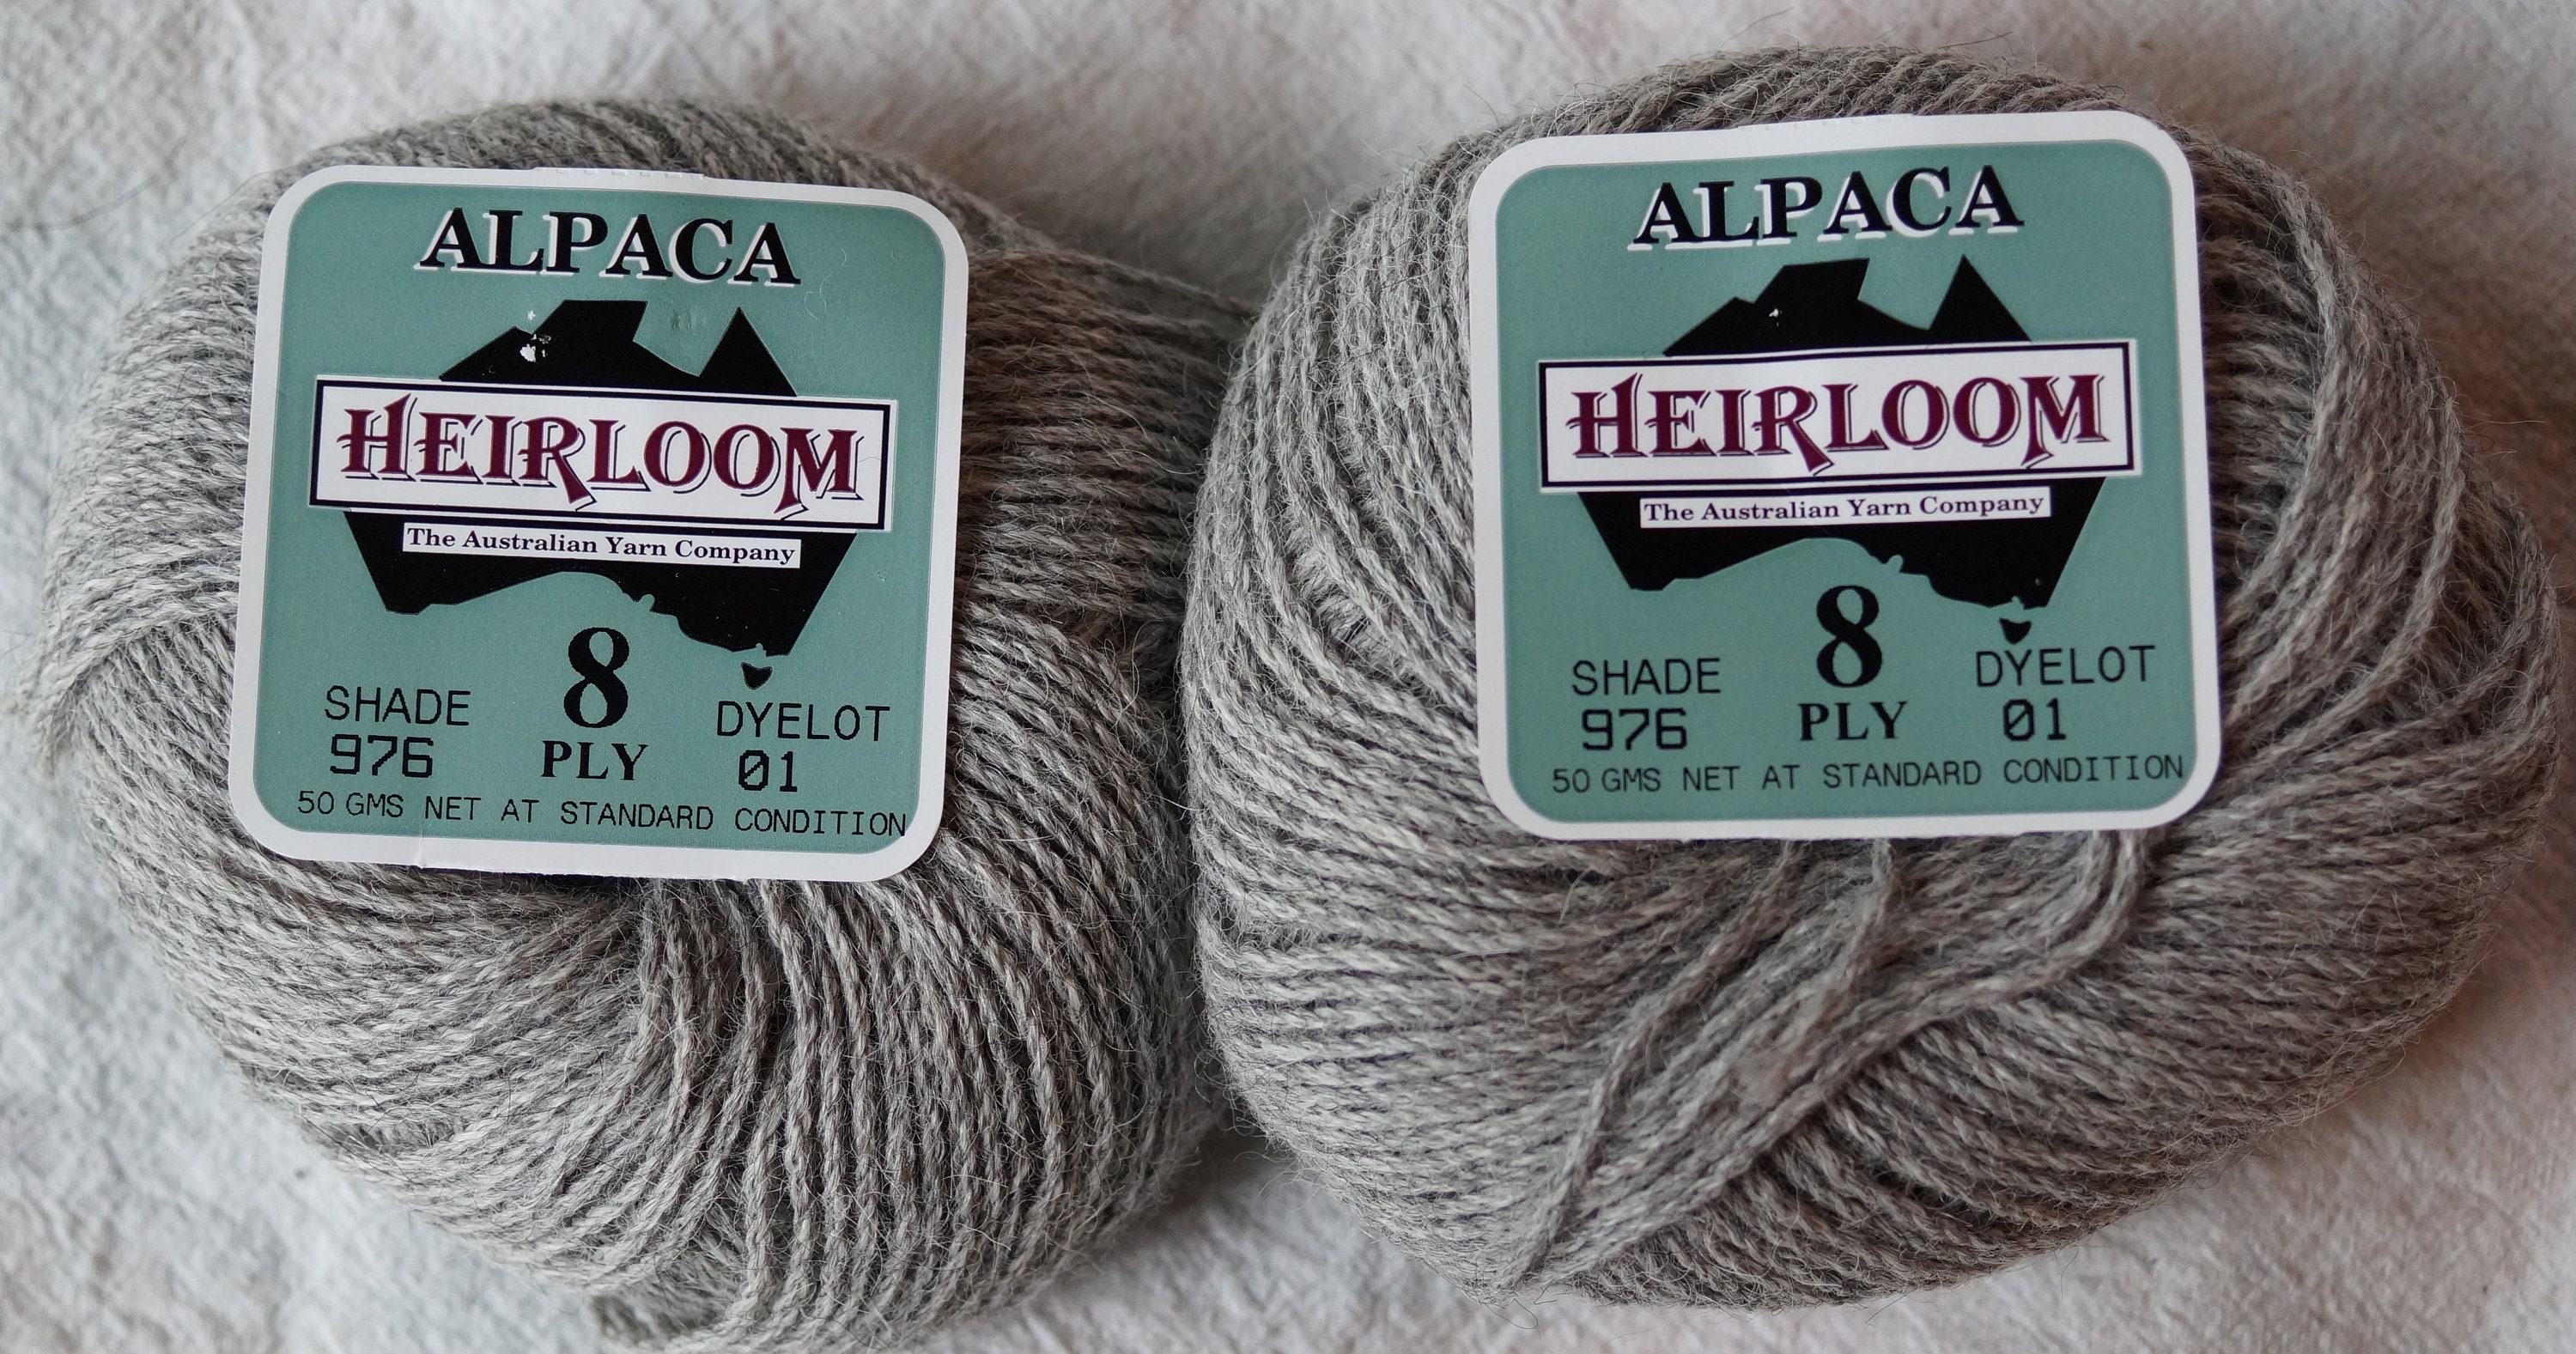 Alpaca yarn, 8 ply worsted weight choose white or gray, 100 percent